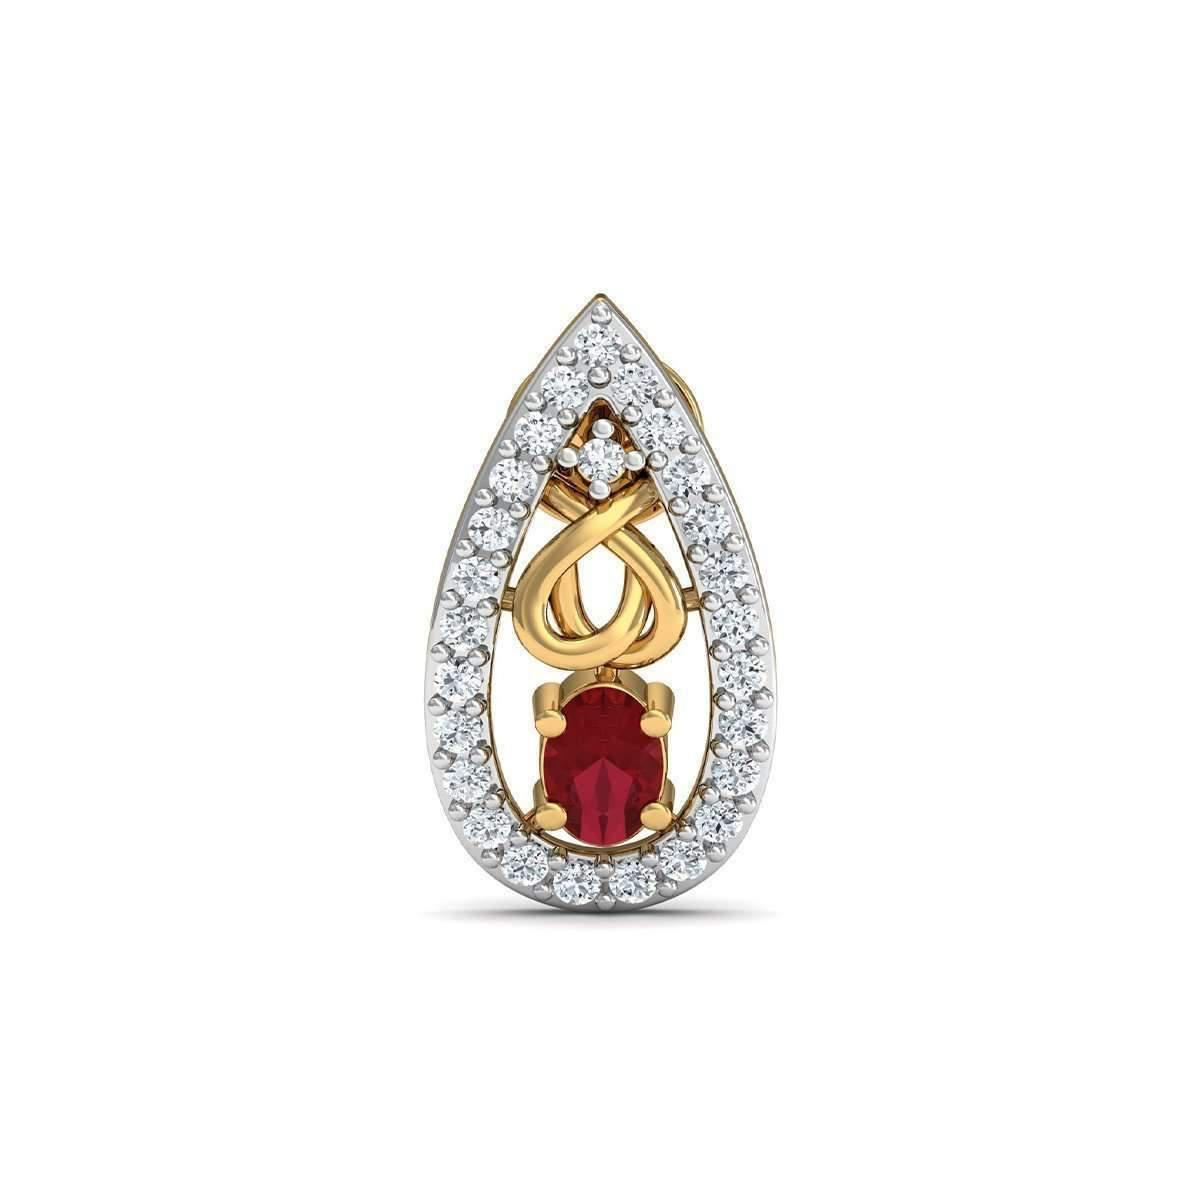 Diamoire Jewels Oval Cut African Ruby and Diamonds Hand-set in 18kt Yellow Gold 6BNWVqs